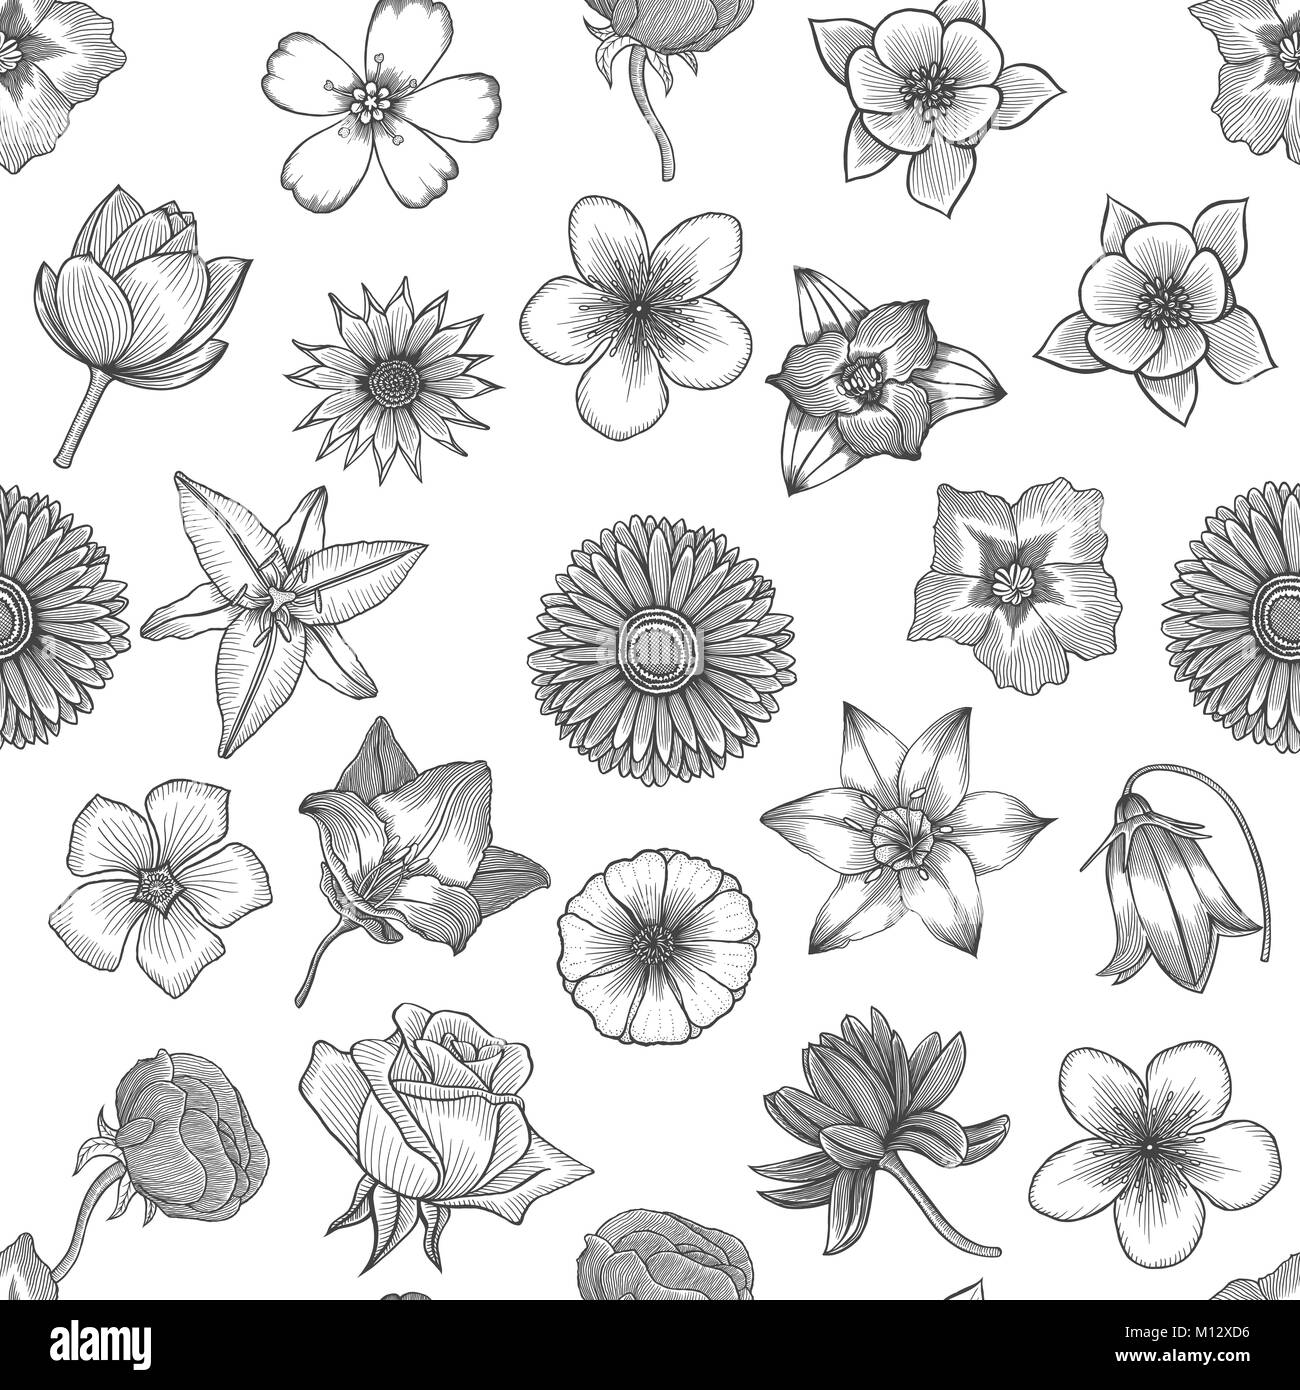 Spring Flowers Seamless Floral Pattern Background Hand Drawing